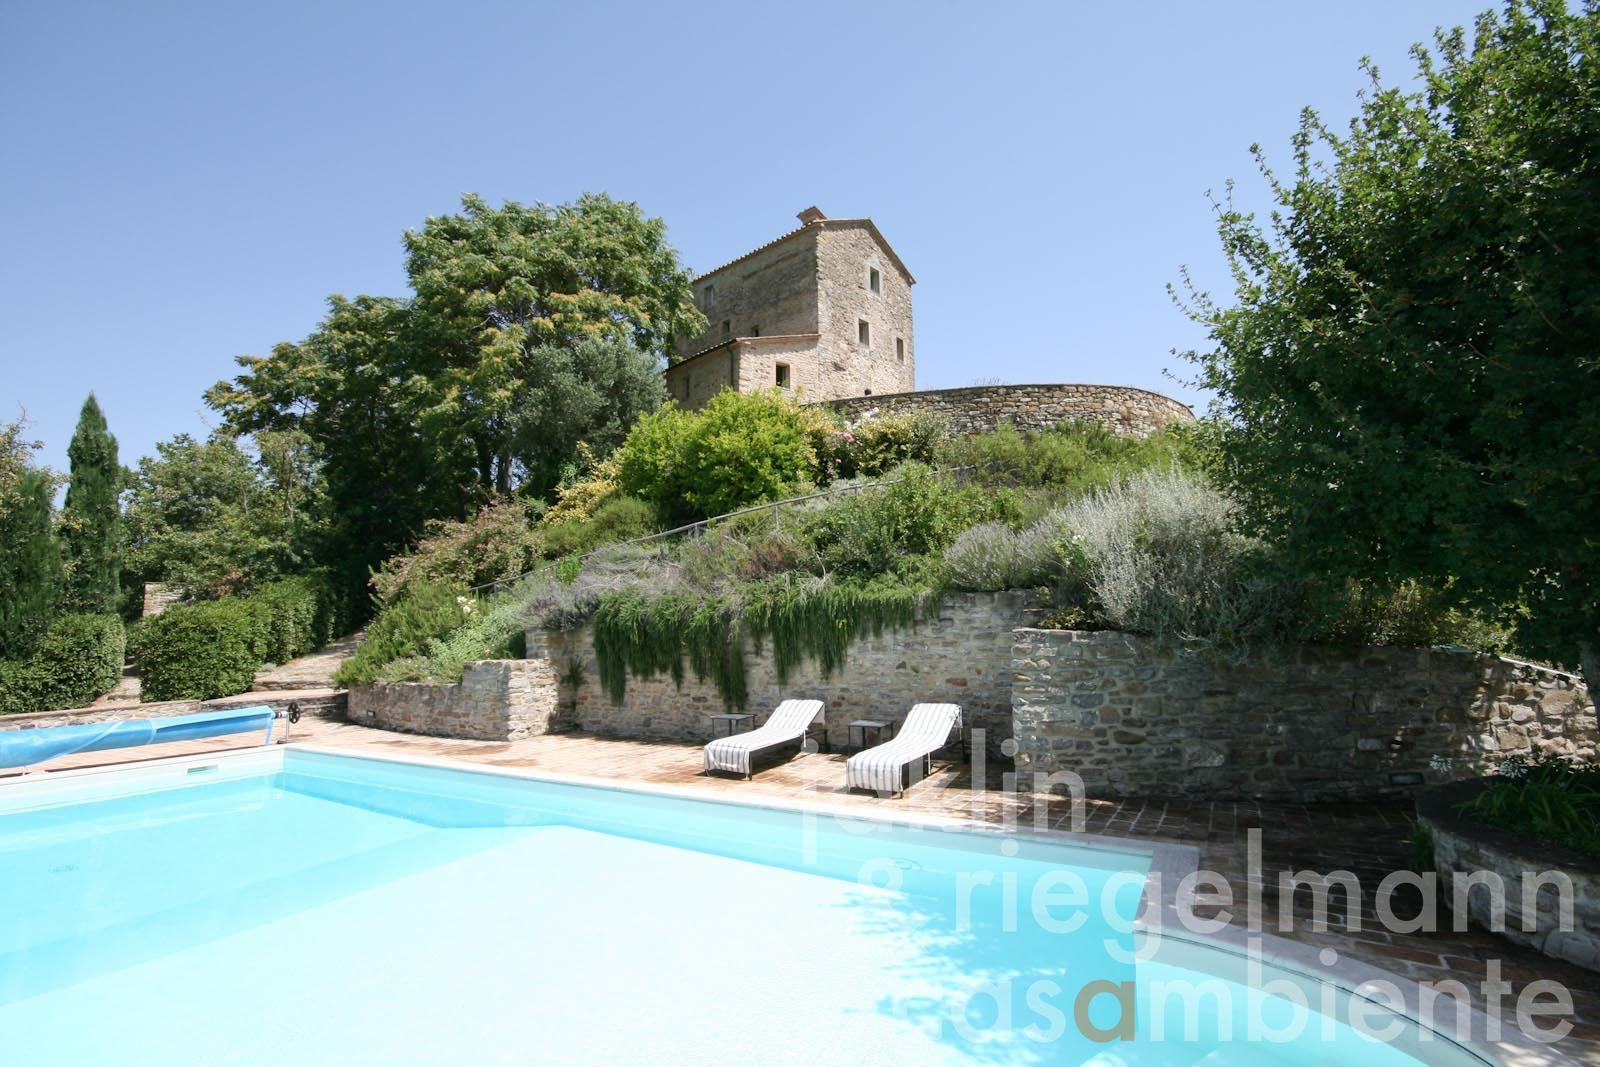 The fully restored ancient watch tower for sale with swimming pool in Umbria